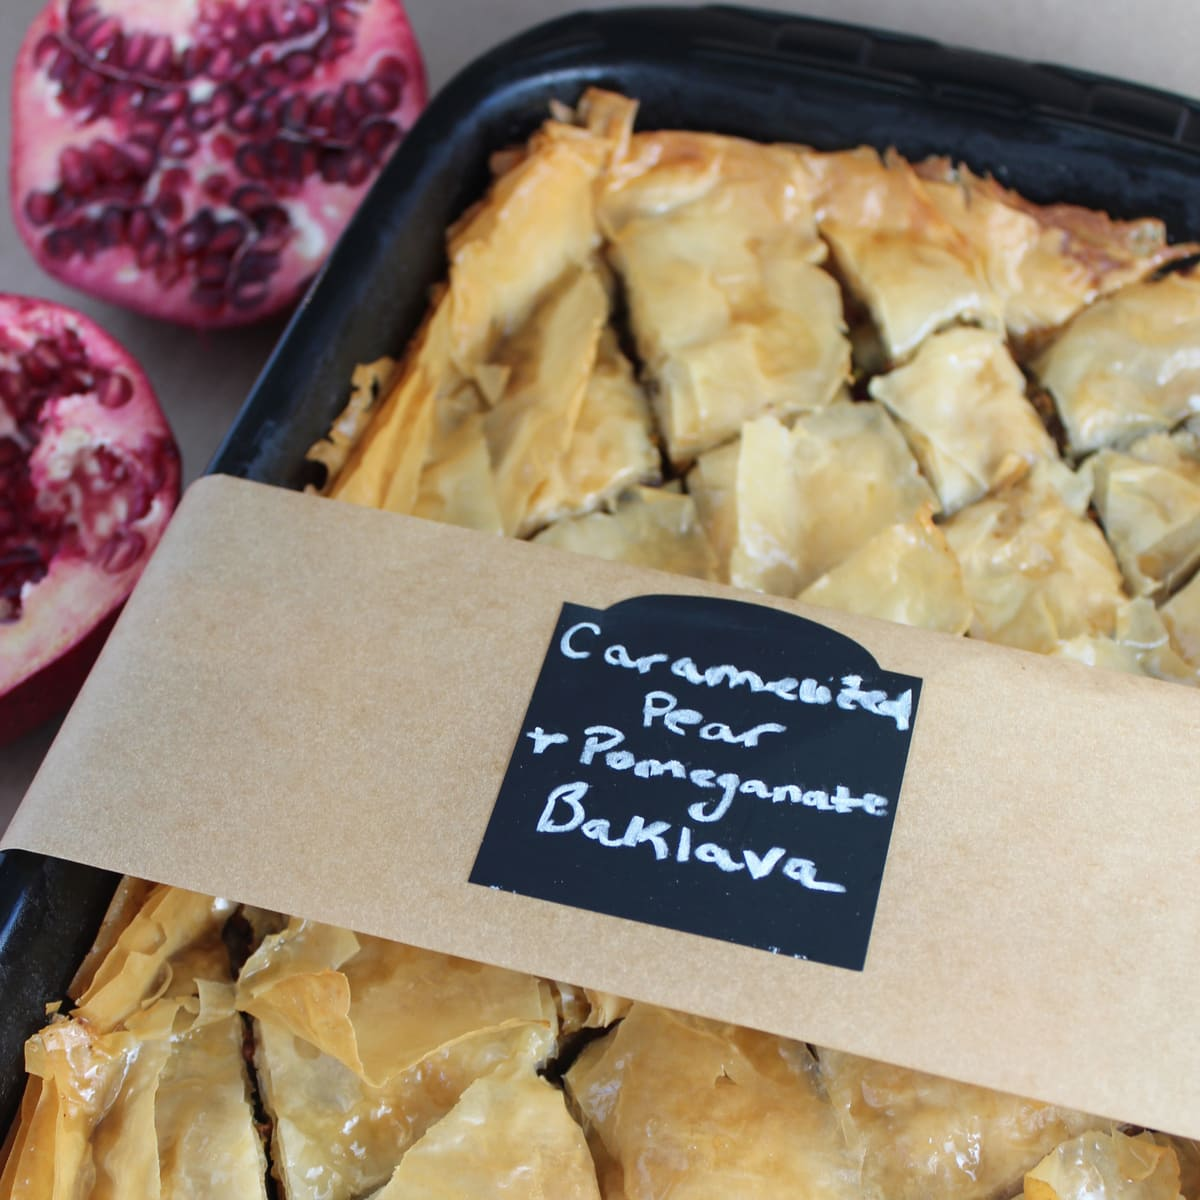 Caramelized Pear and Pomegranate Baklava